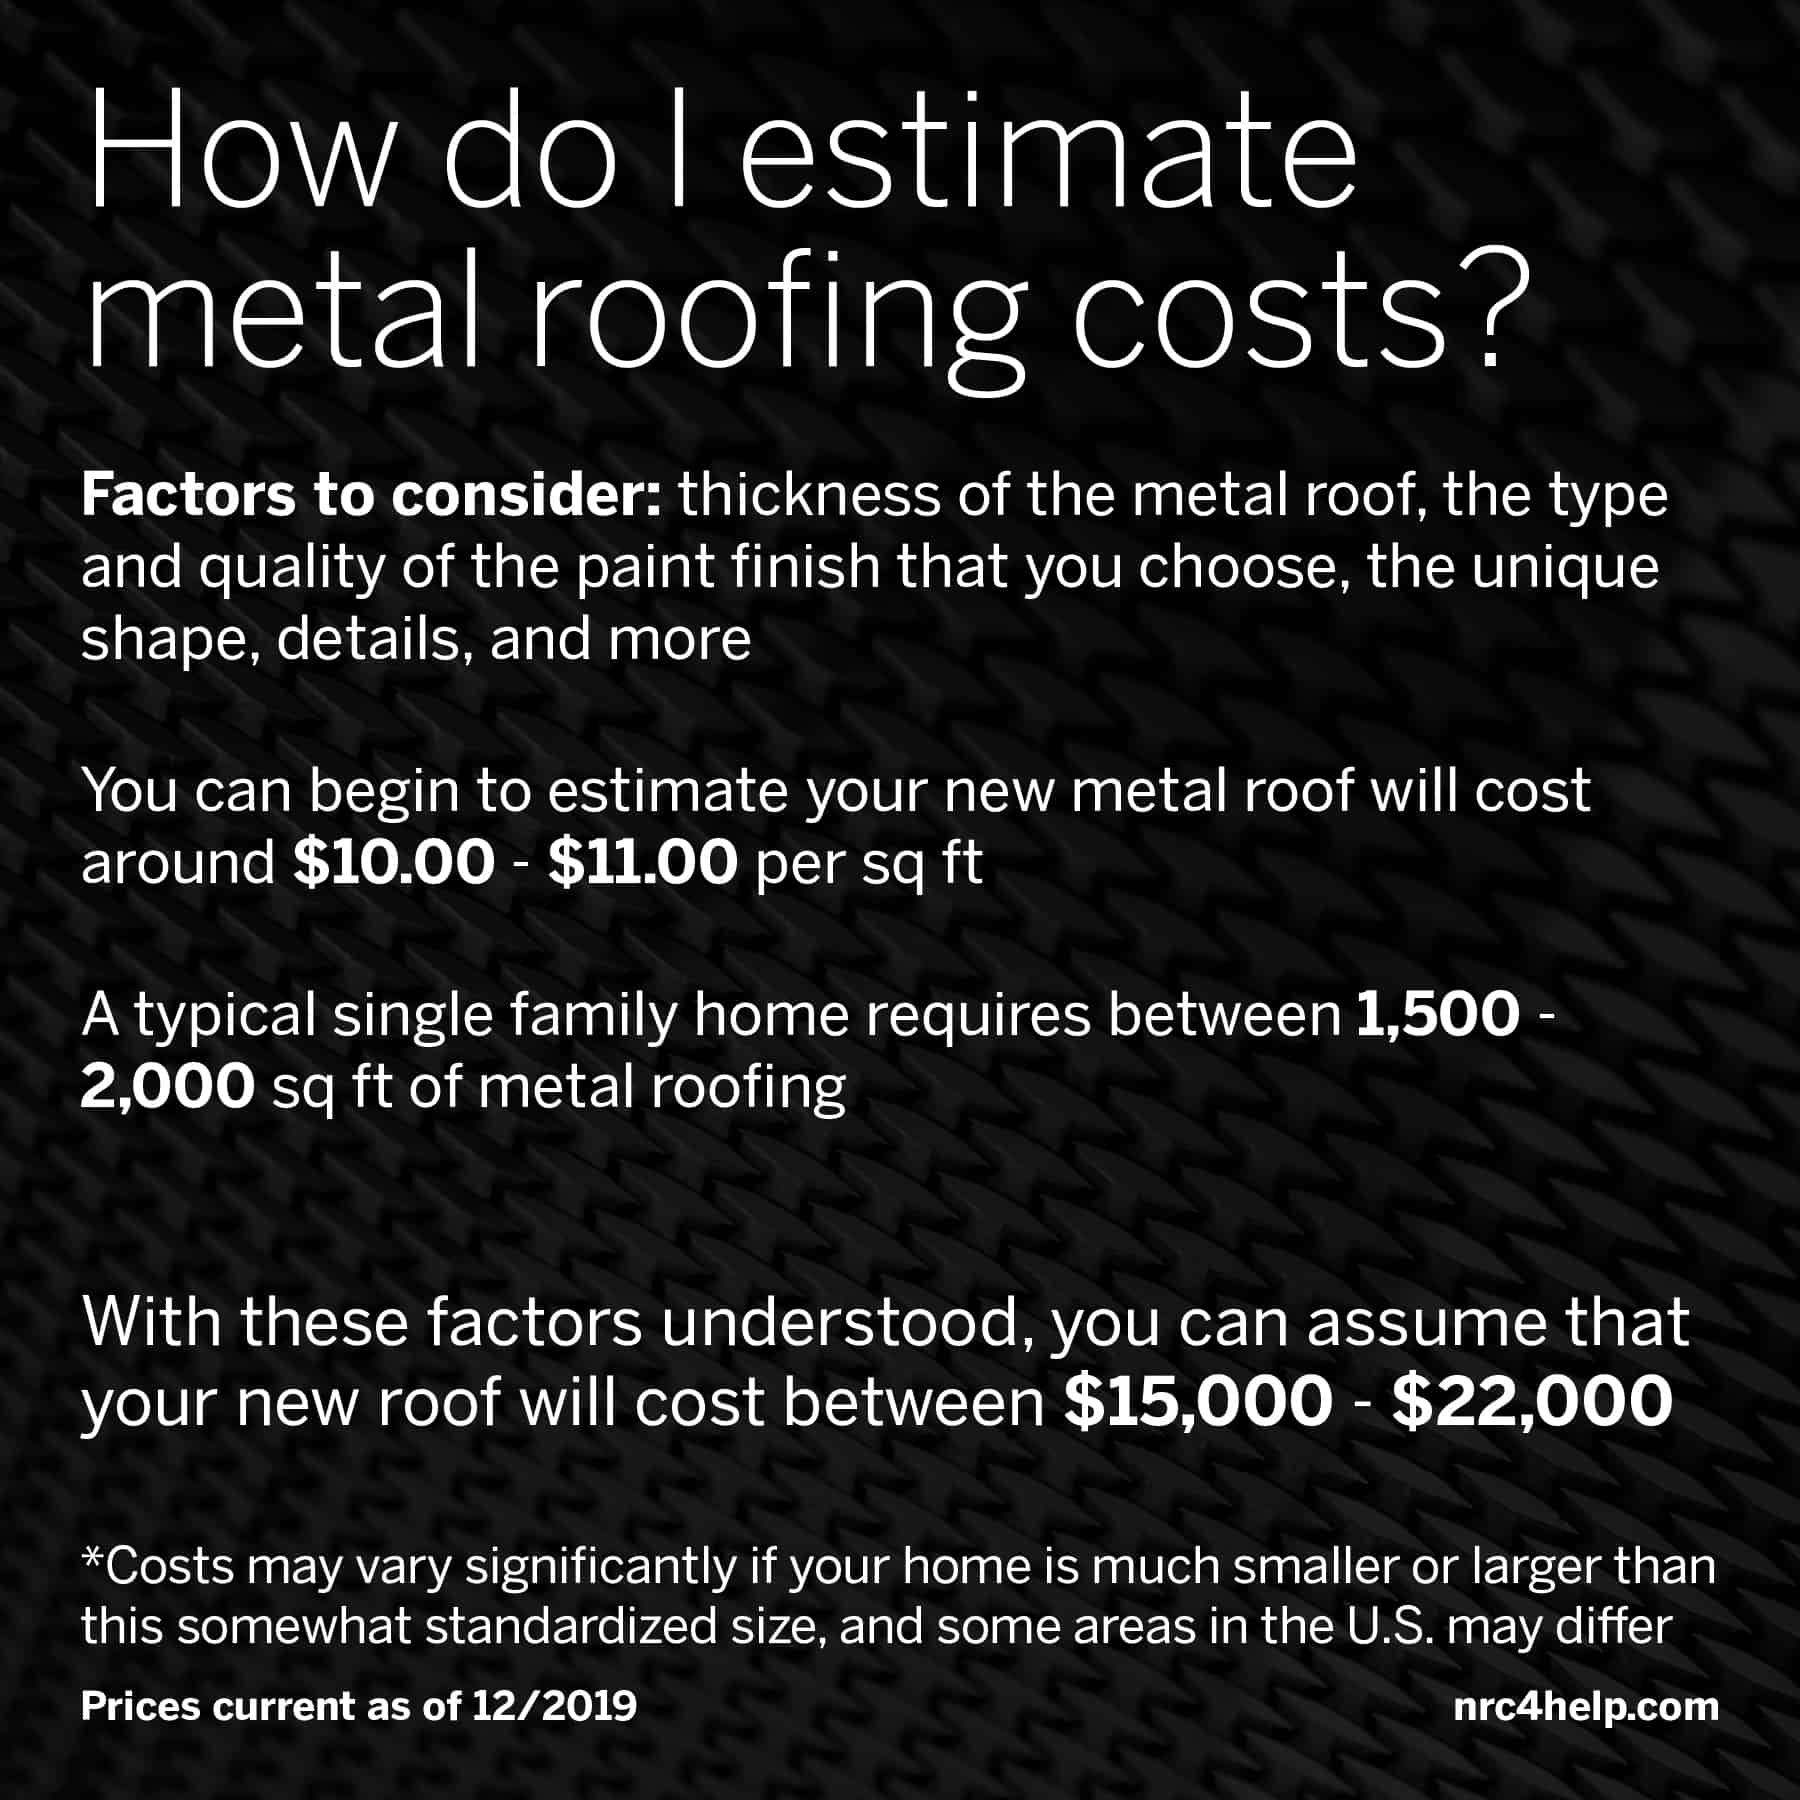 How Much To Charge Per Square Foot For A Metal Roof In 2020 Roofing Estimate Metal Roof Metal Roof Installation